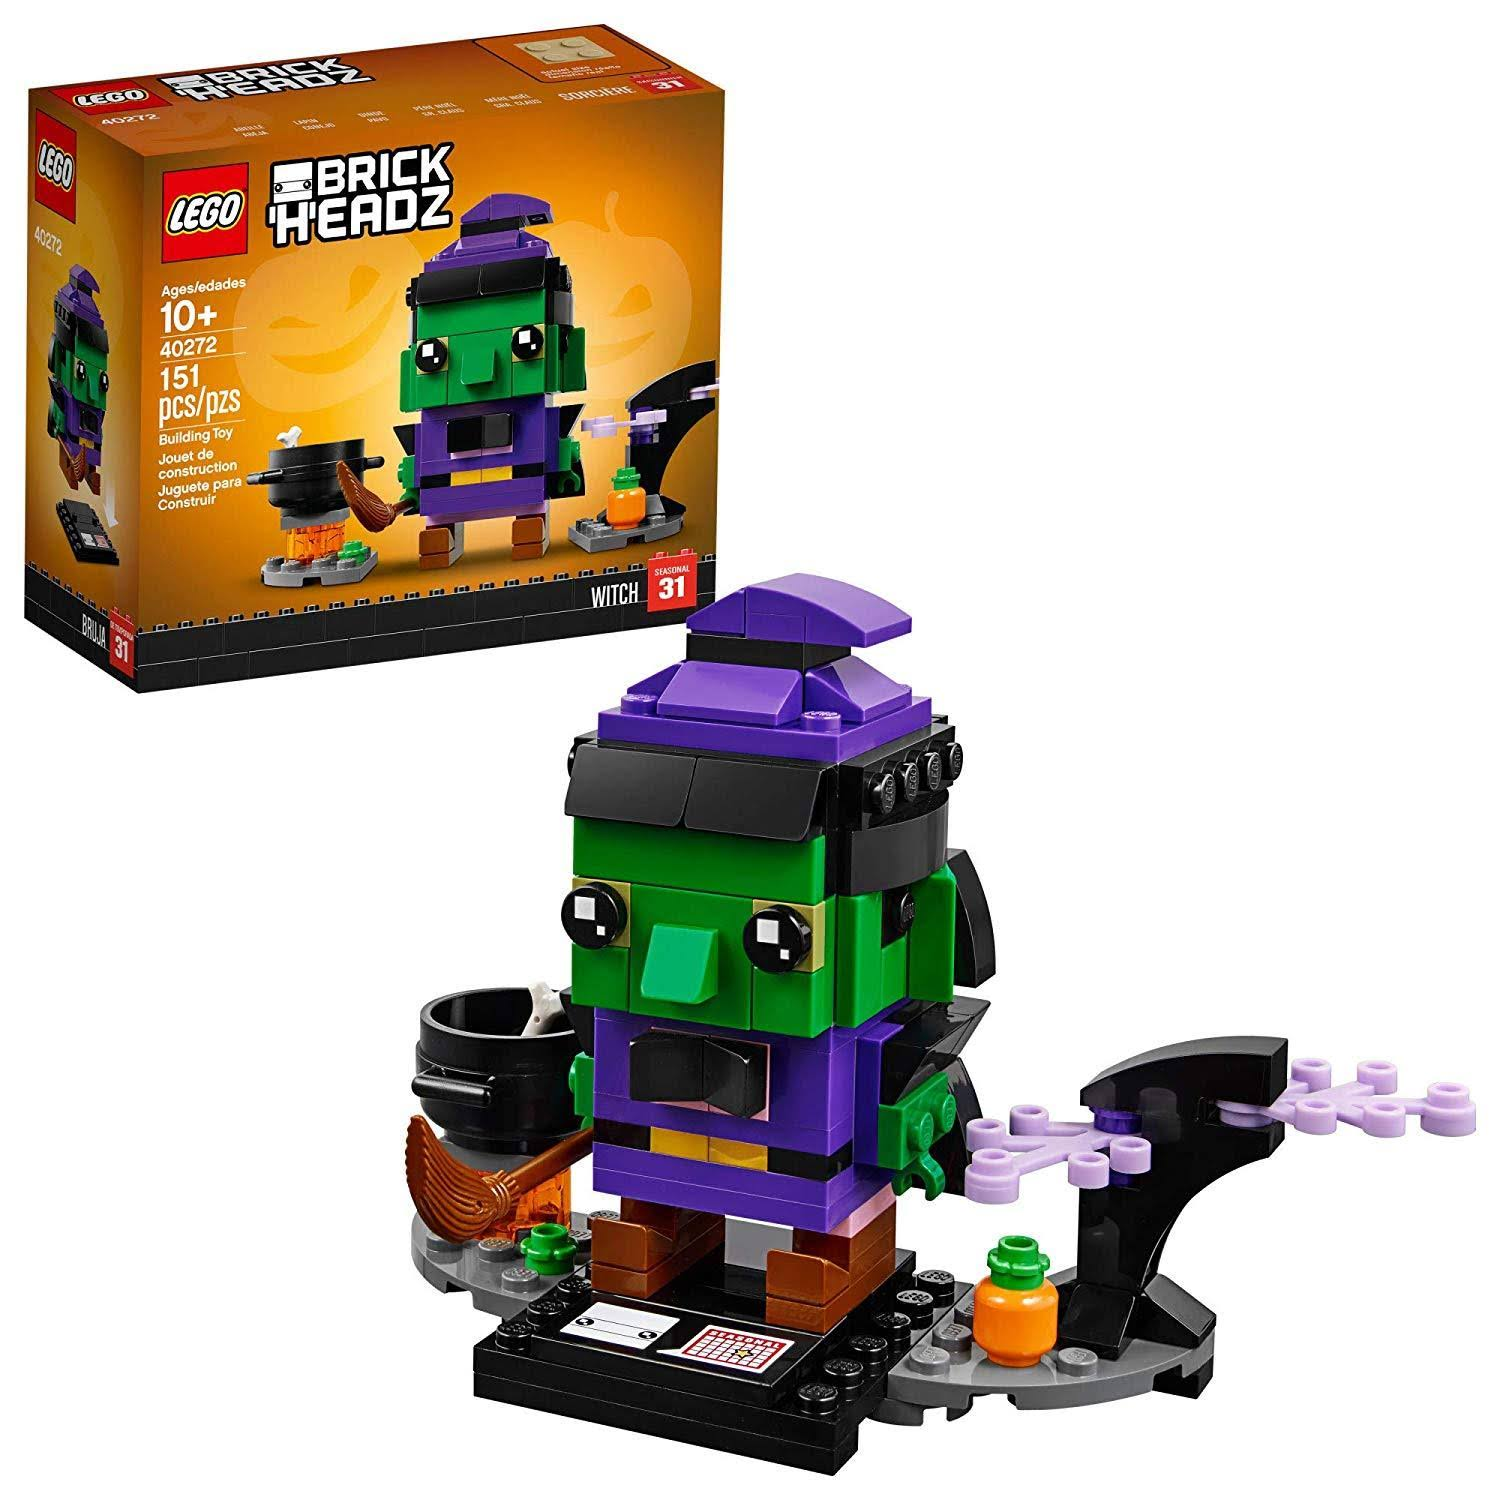 Lego Seasonal Brick Headz Witch Toys Set - 151pcs Set